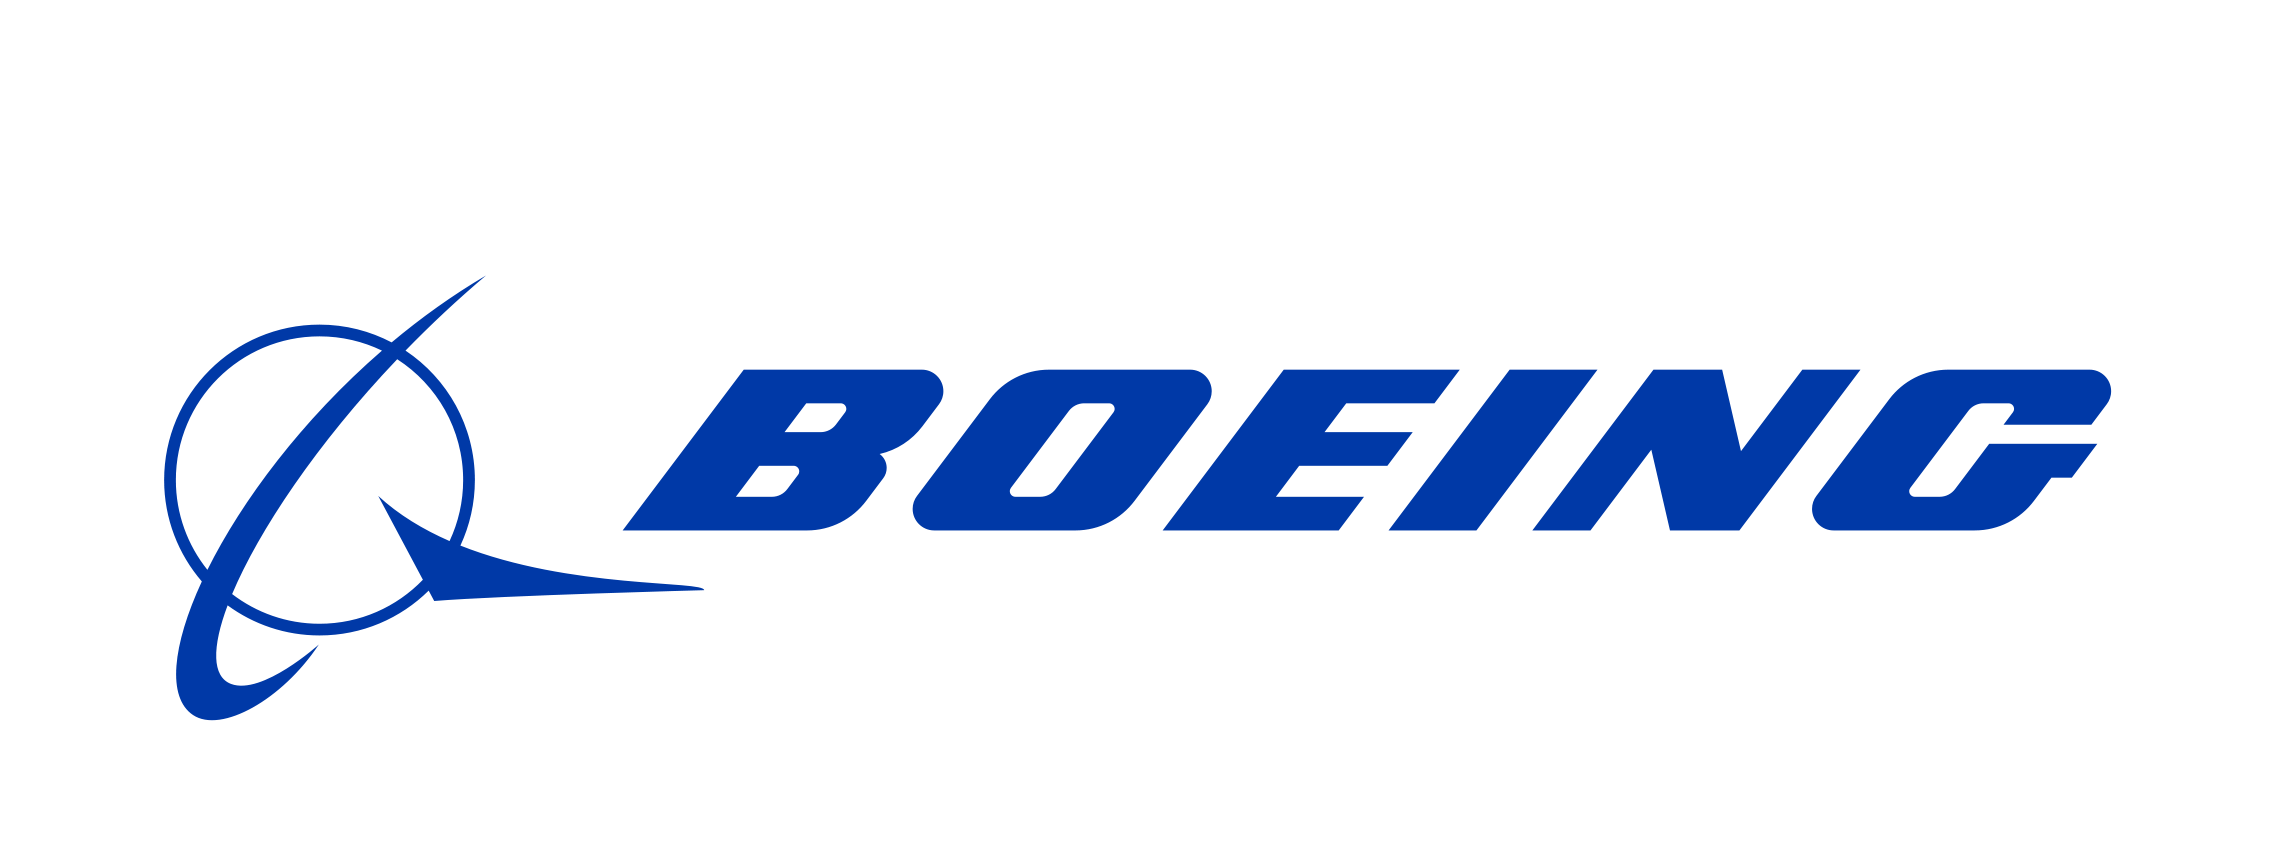 Airplanes Logo - Boeing: Boeing UK - Commercial Airplanes